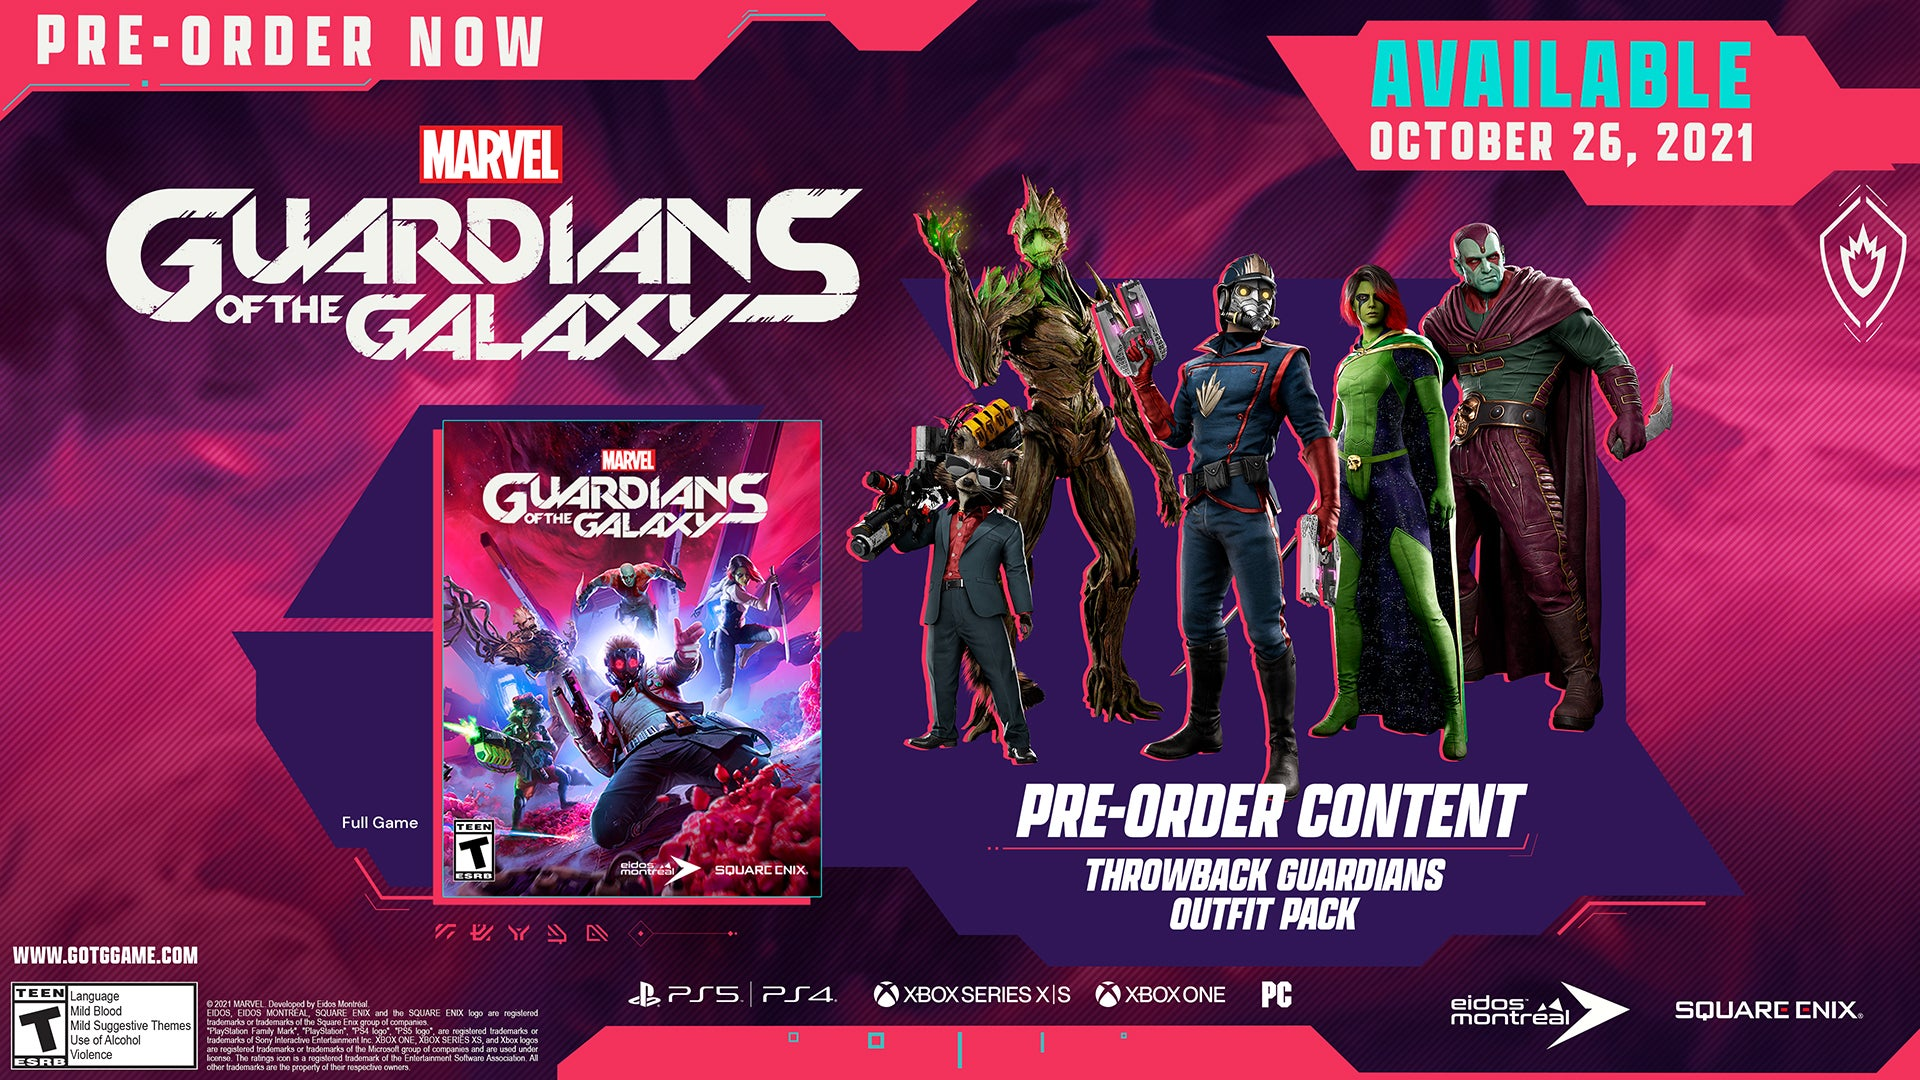 The outfits for the Guardians included in the Throwback Guardians Outfit Pack. They are faithful interpretations of some of their most iconic looks from the comics.